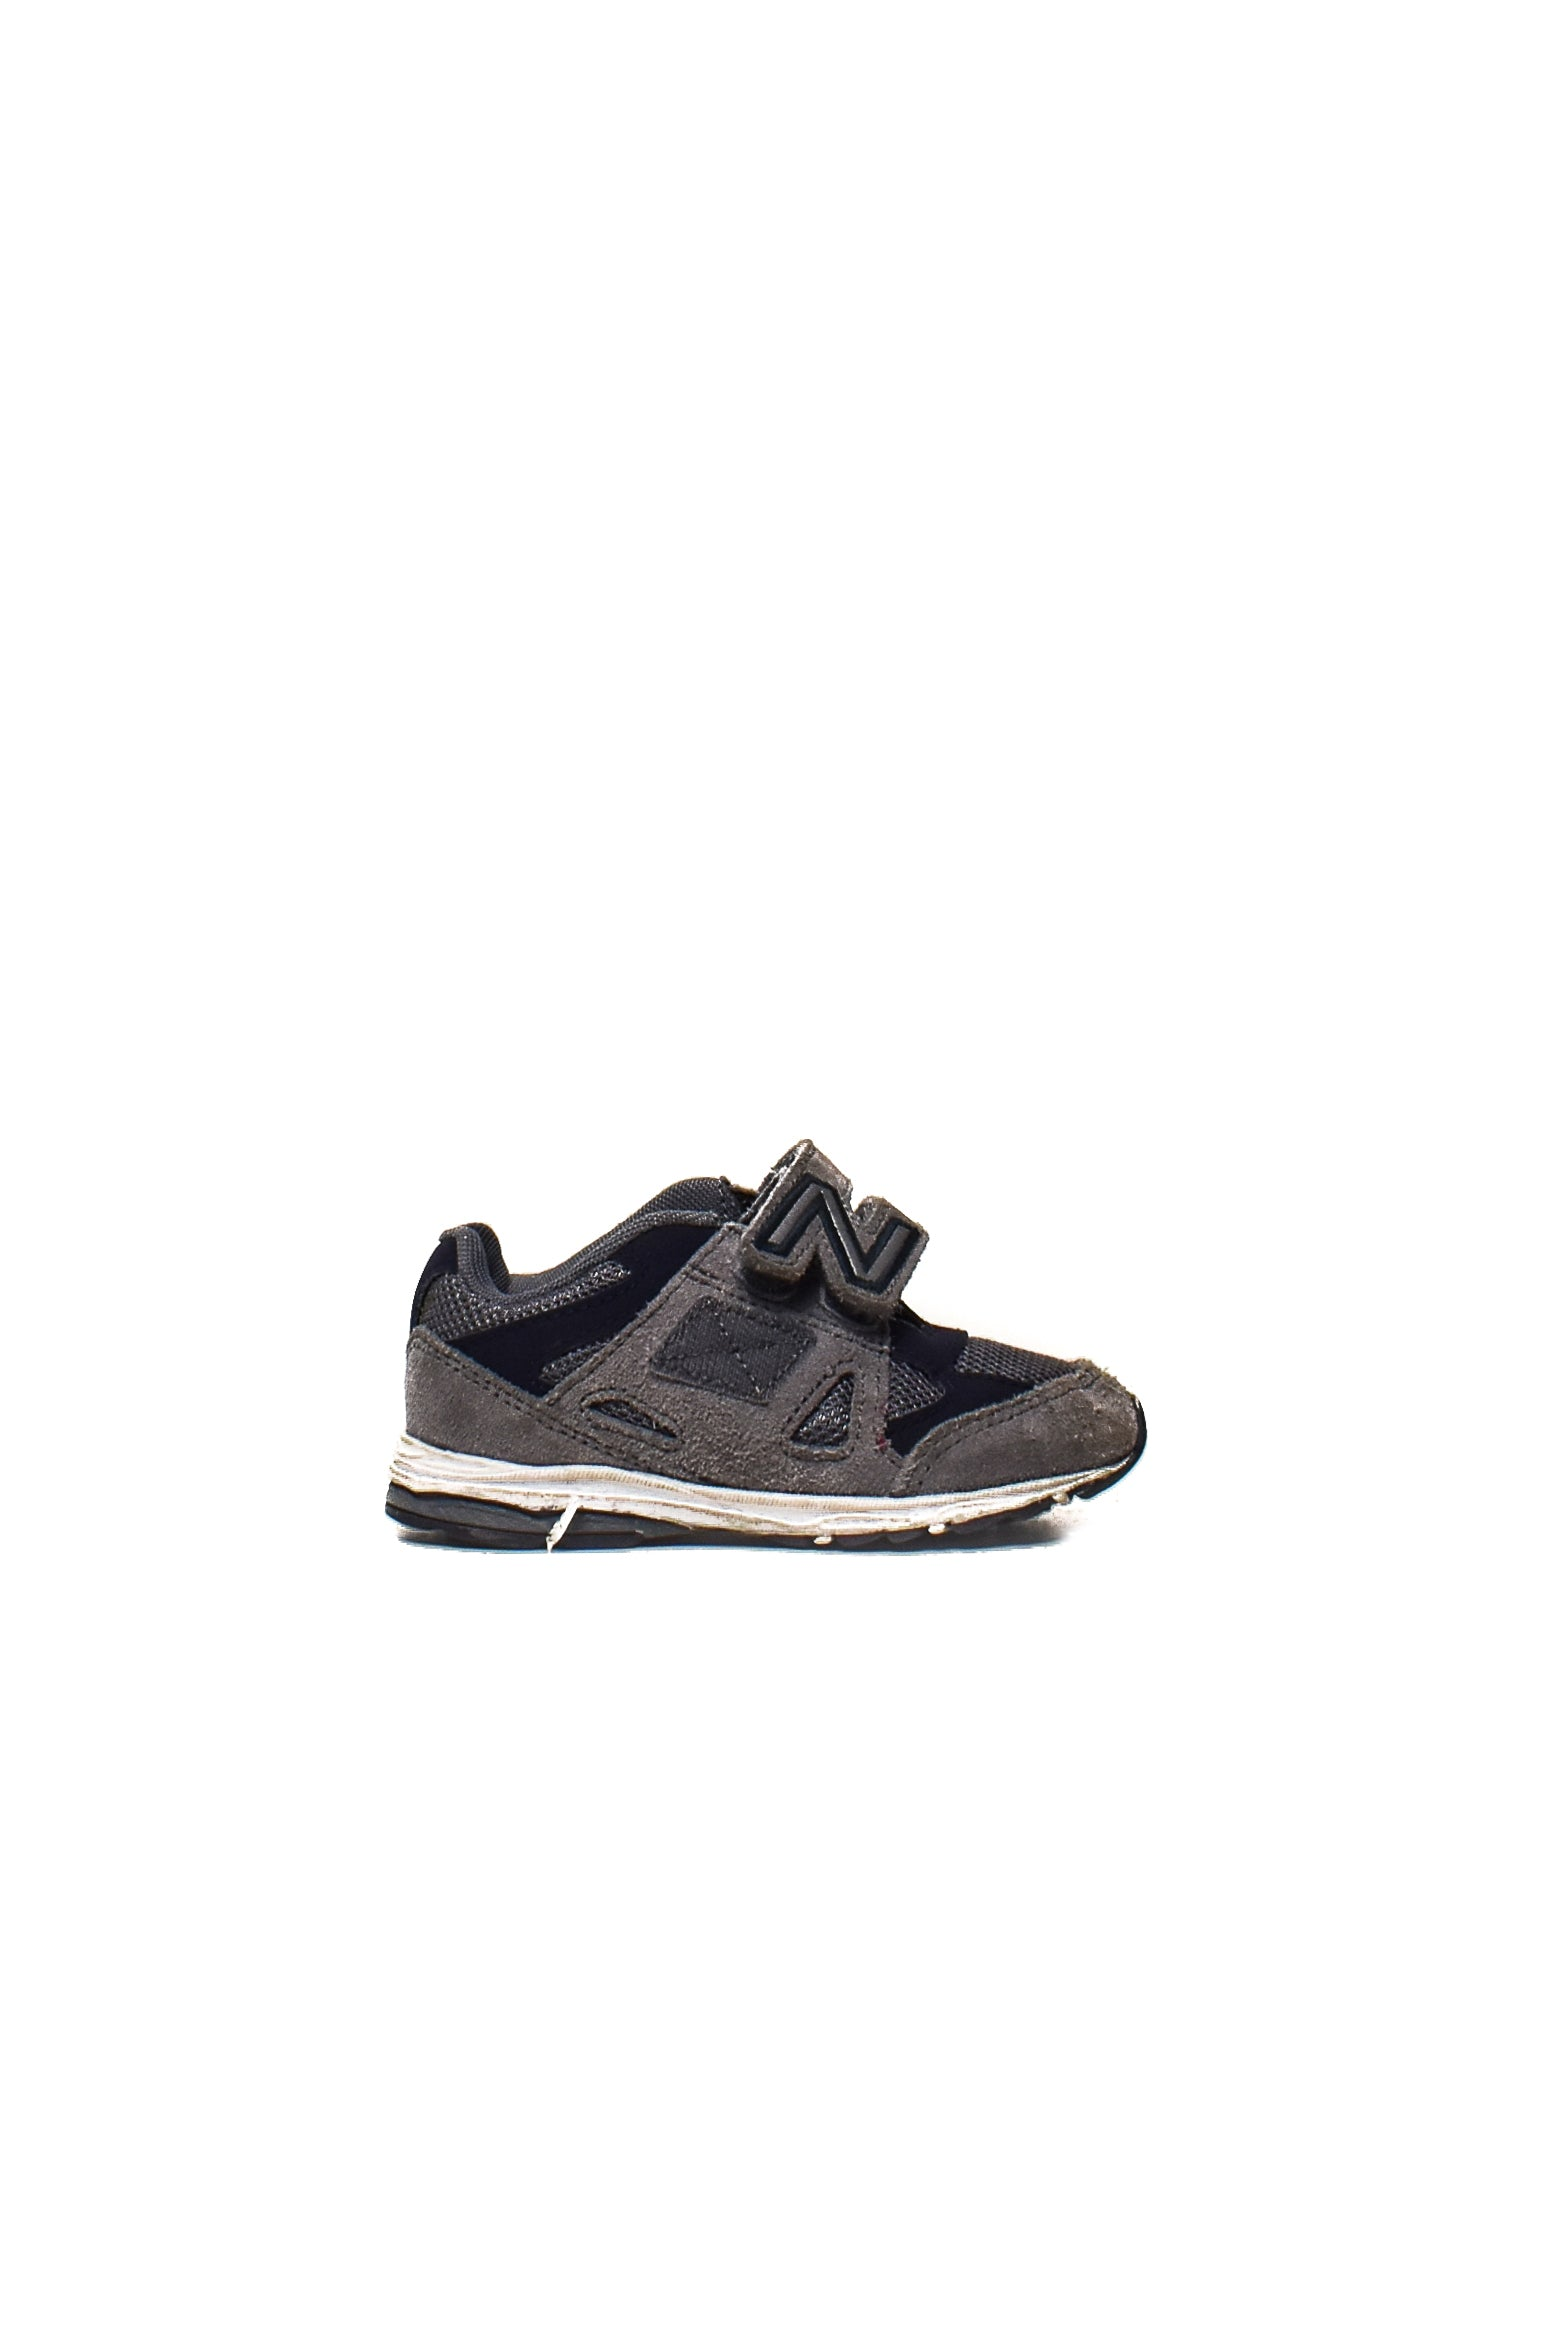 10006955 New Balance Kids~ Shoes EU 24 at Retykle